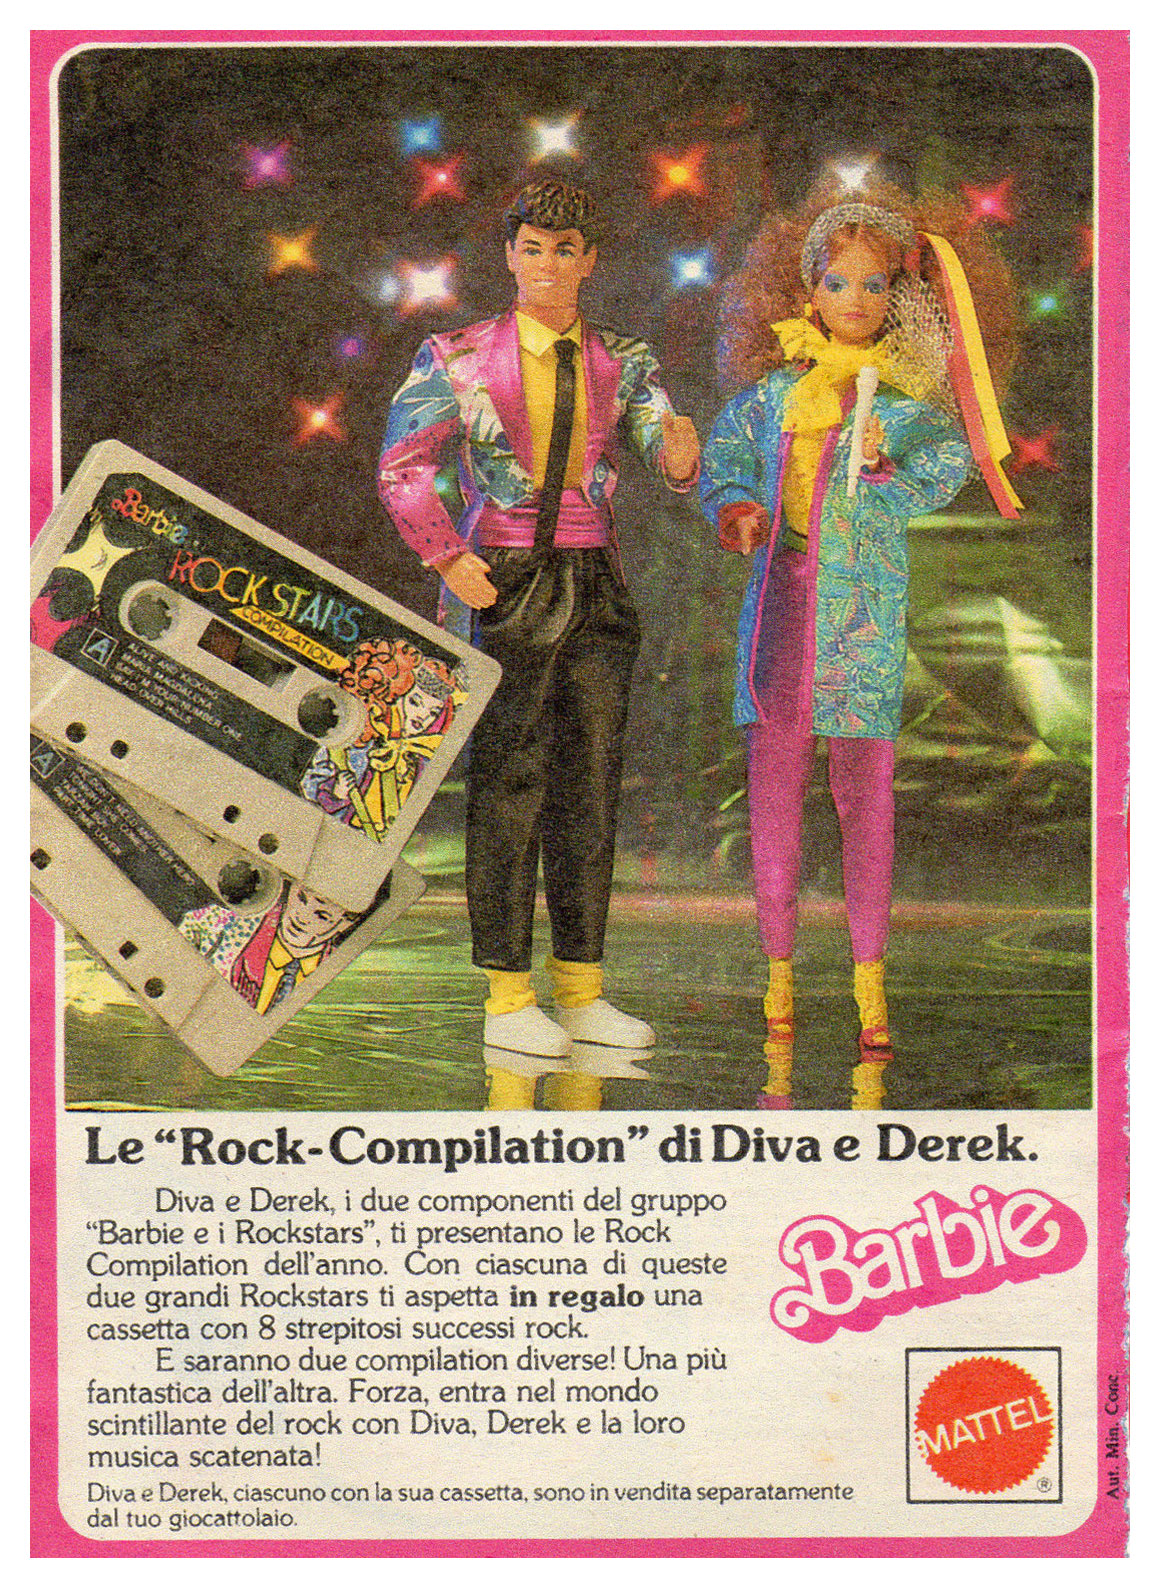 1986 Italian Rock Stars Derek advertisement